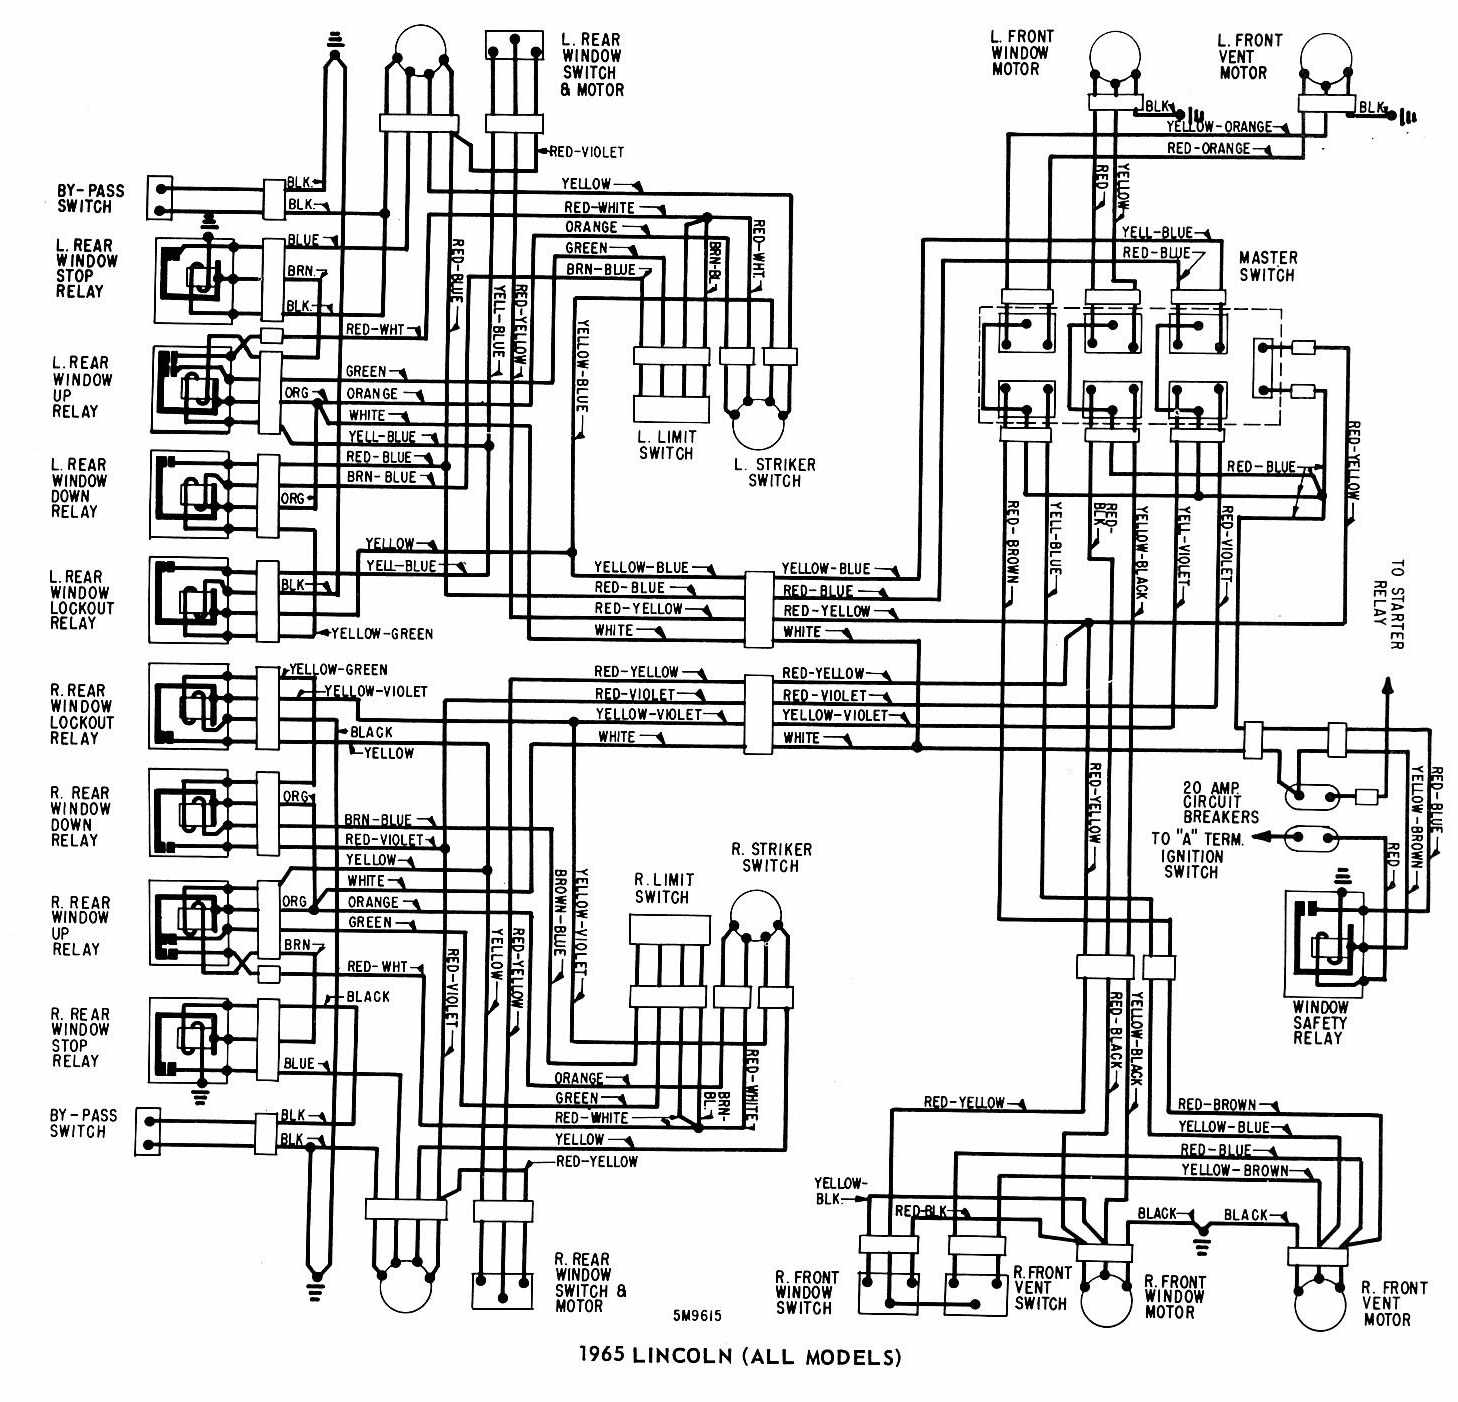 1989 Mercury Grand Marquis Wiring Diagram, 1989, Get Free